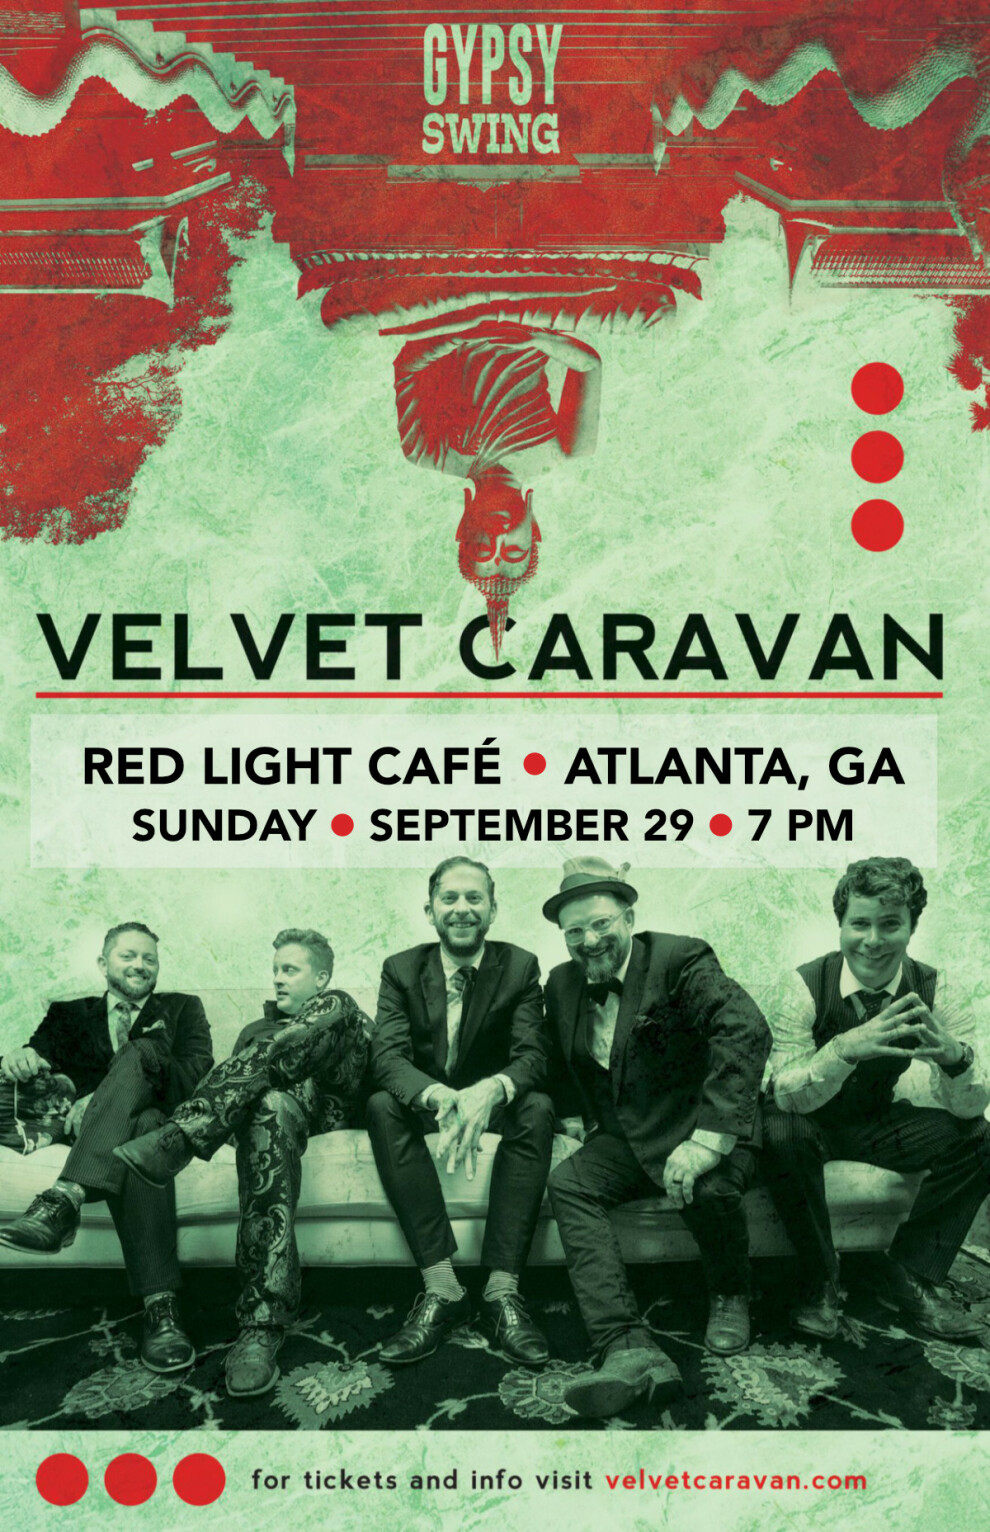 Velvet Caravan A Sunday Evening Of Gypsy Swing At Red Light Cafe Atlanta Ga Sep 29 2019 Poster 1200